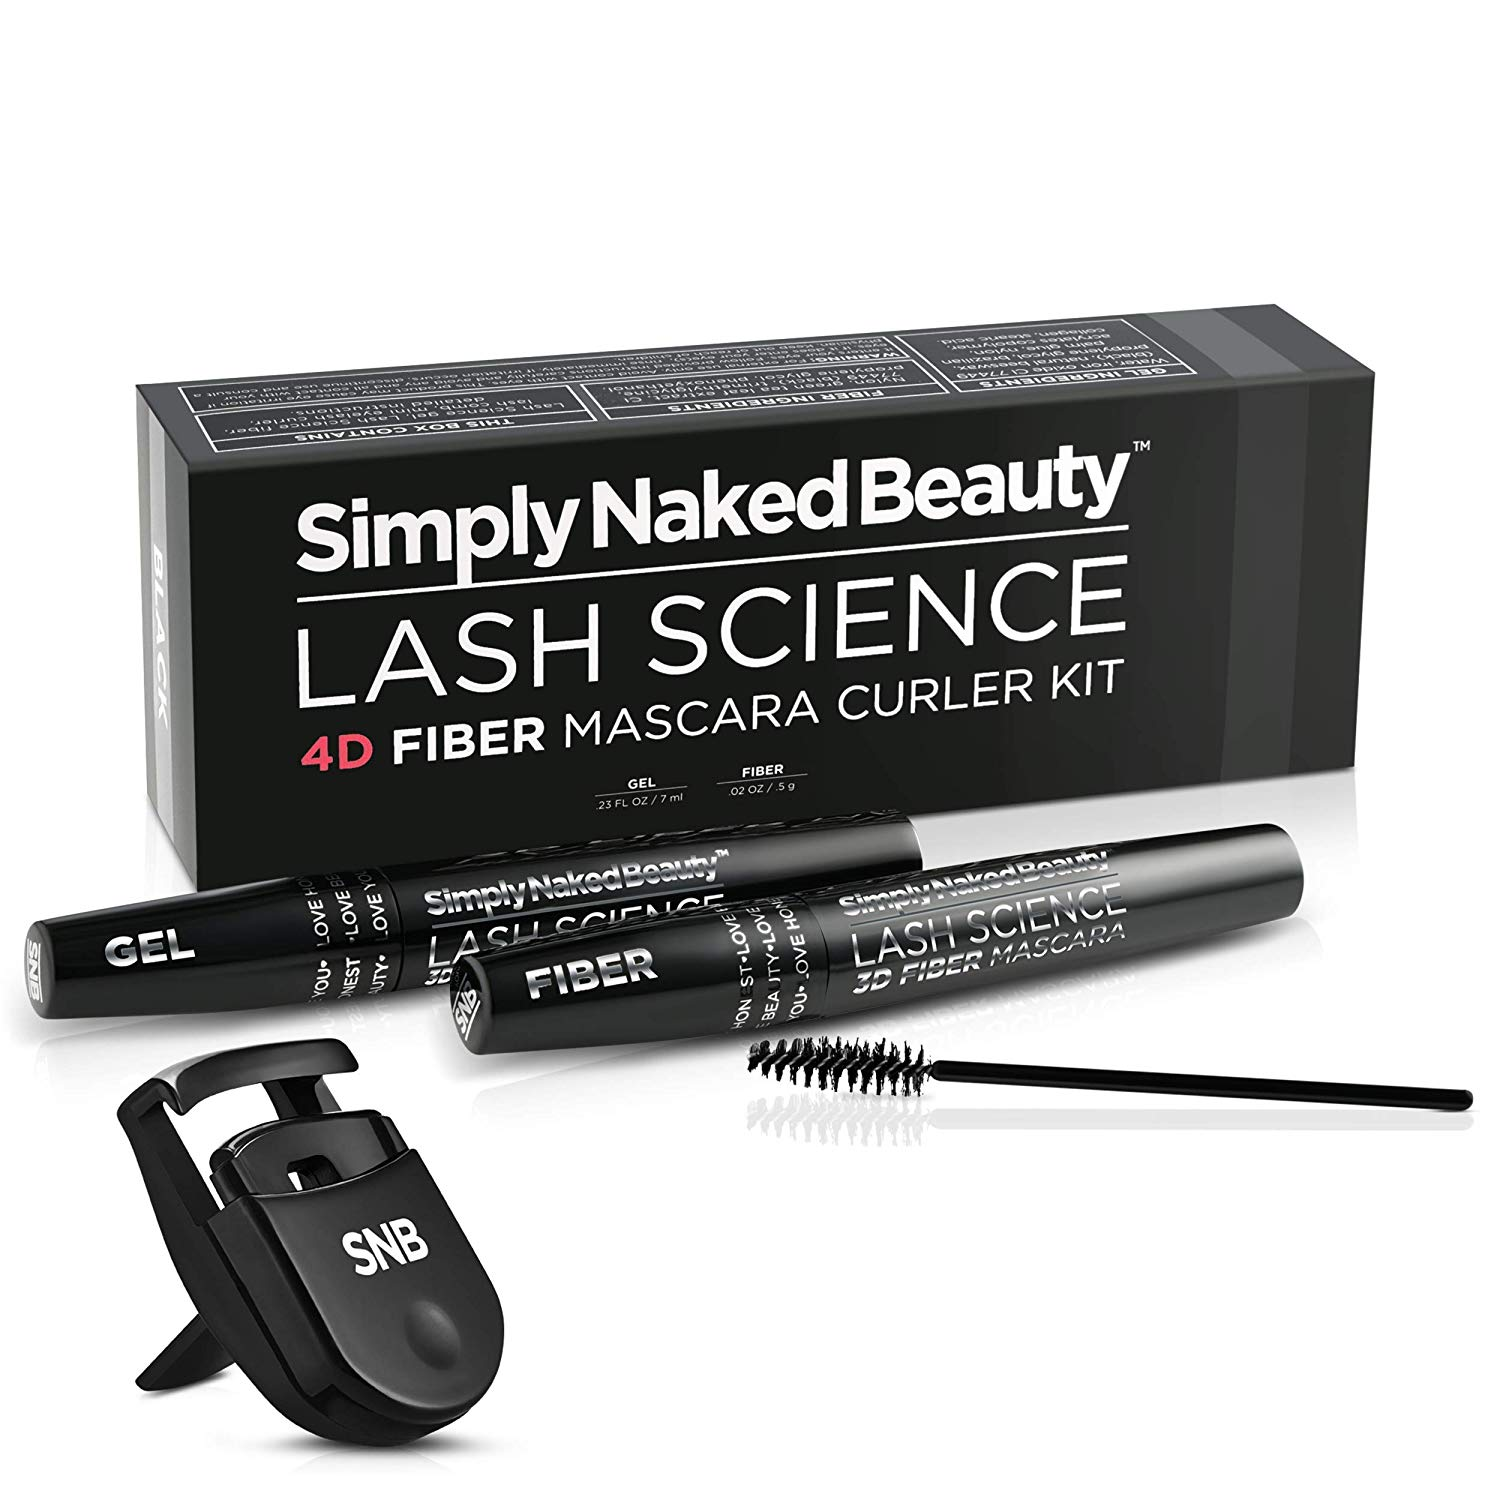 4D Fiber Mascara and Curler Kit by Simply Naked Beauty. Waterproof, lengthening, volumizing, non toxic. Highest quality natural - hypoallergenic ingredients, 3D 4D gel and fiber formula. Mini curler.